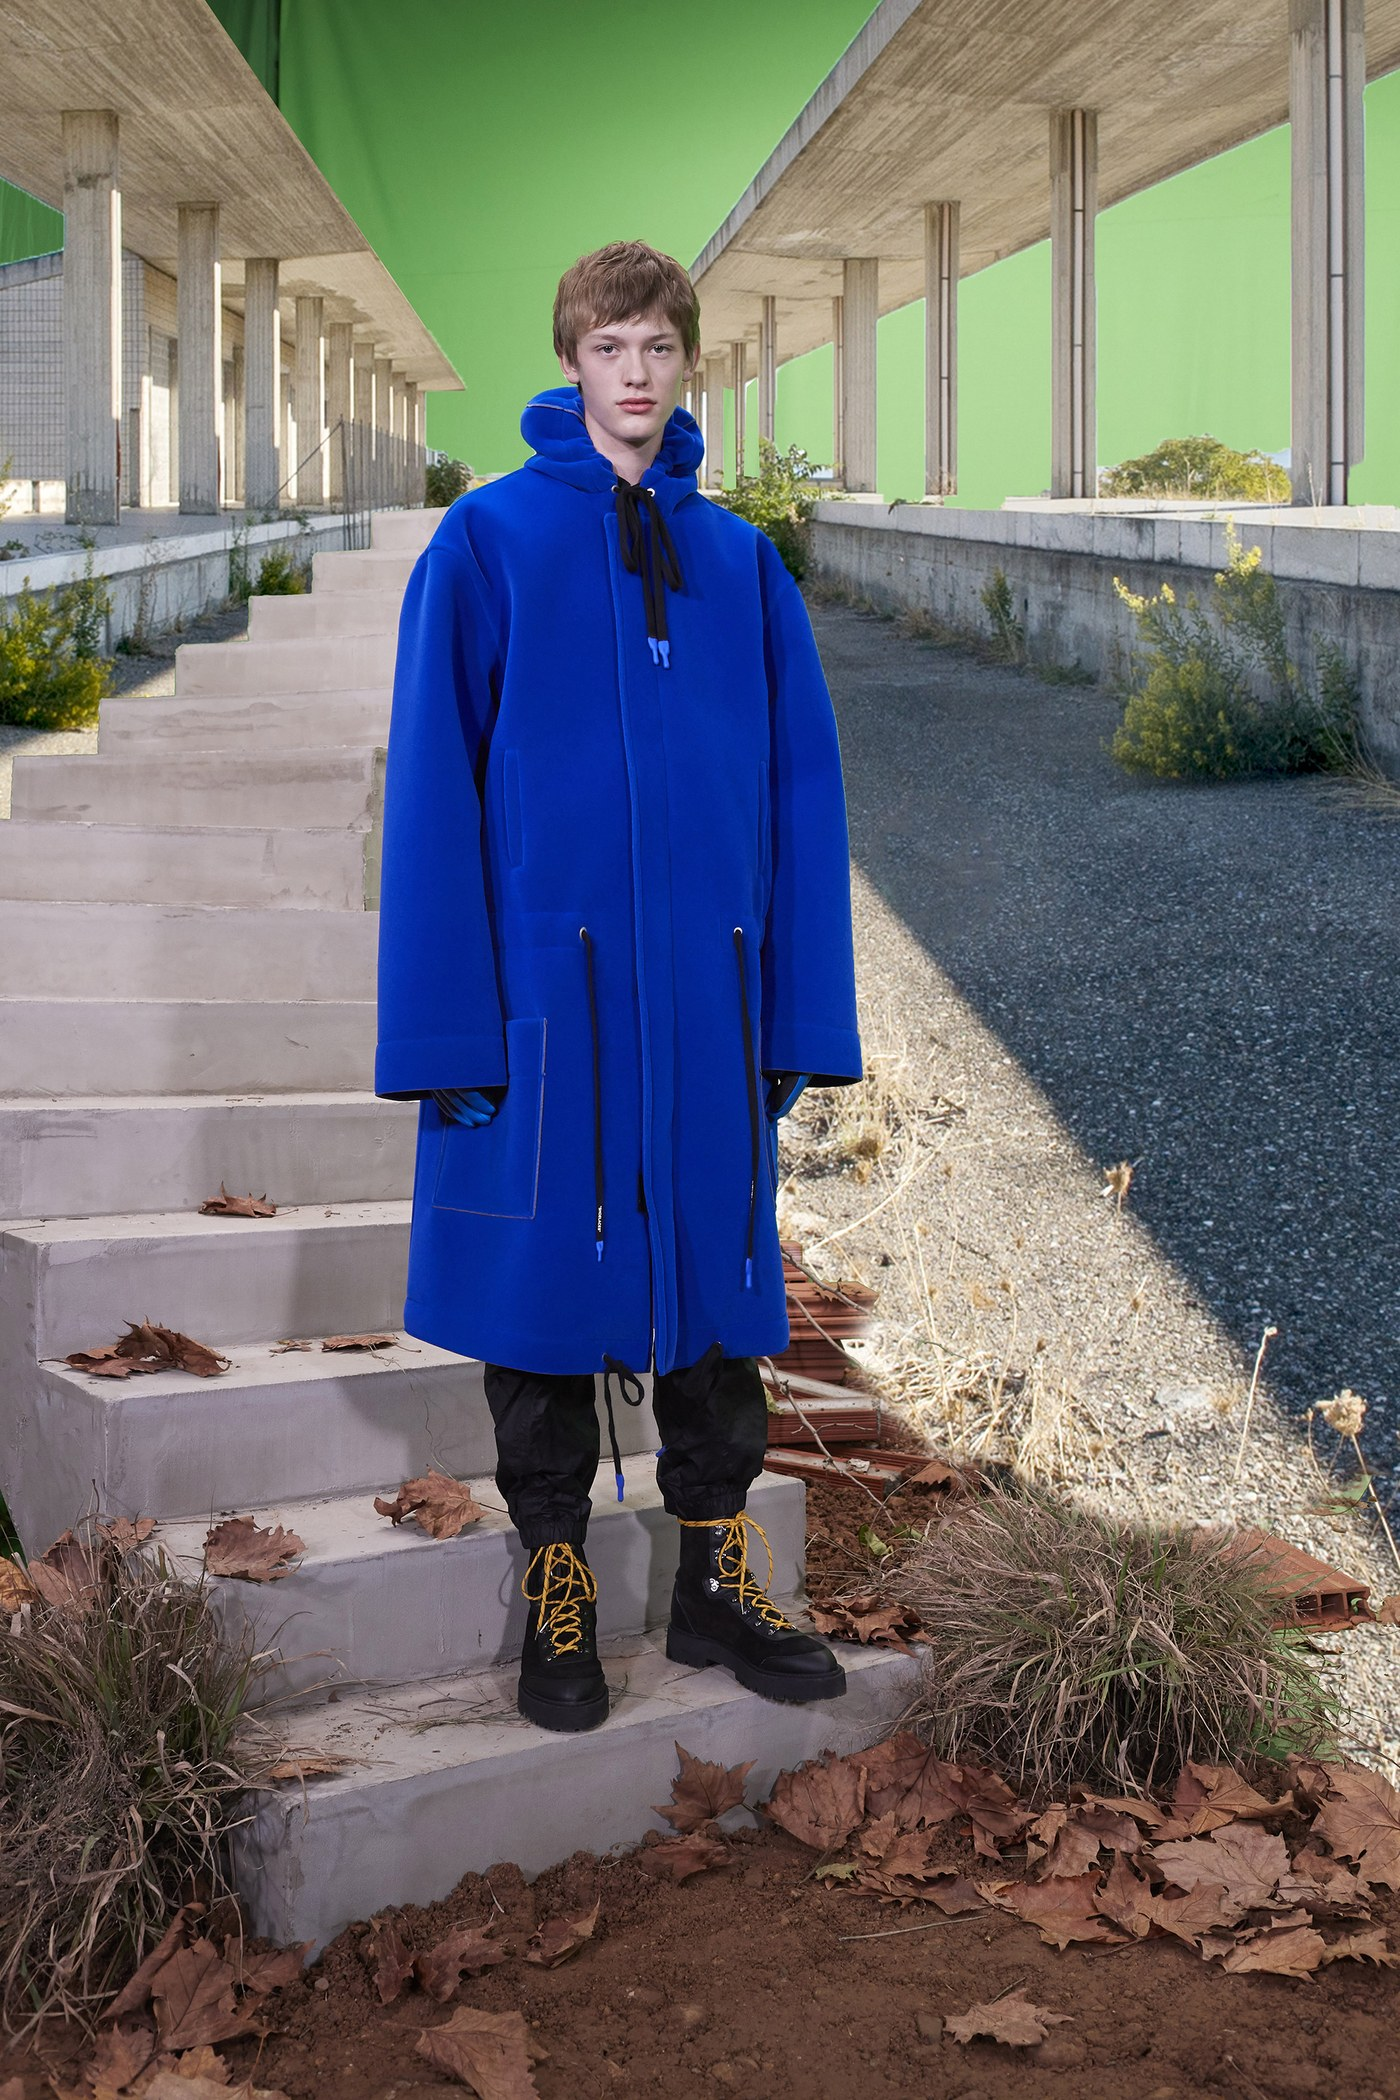 f-White Pre-Fall 2019 Menswear Collection by Virgil Abloh